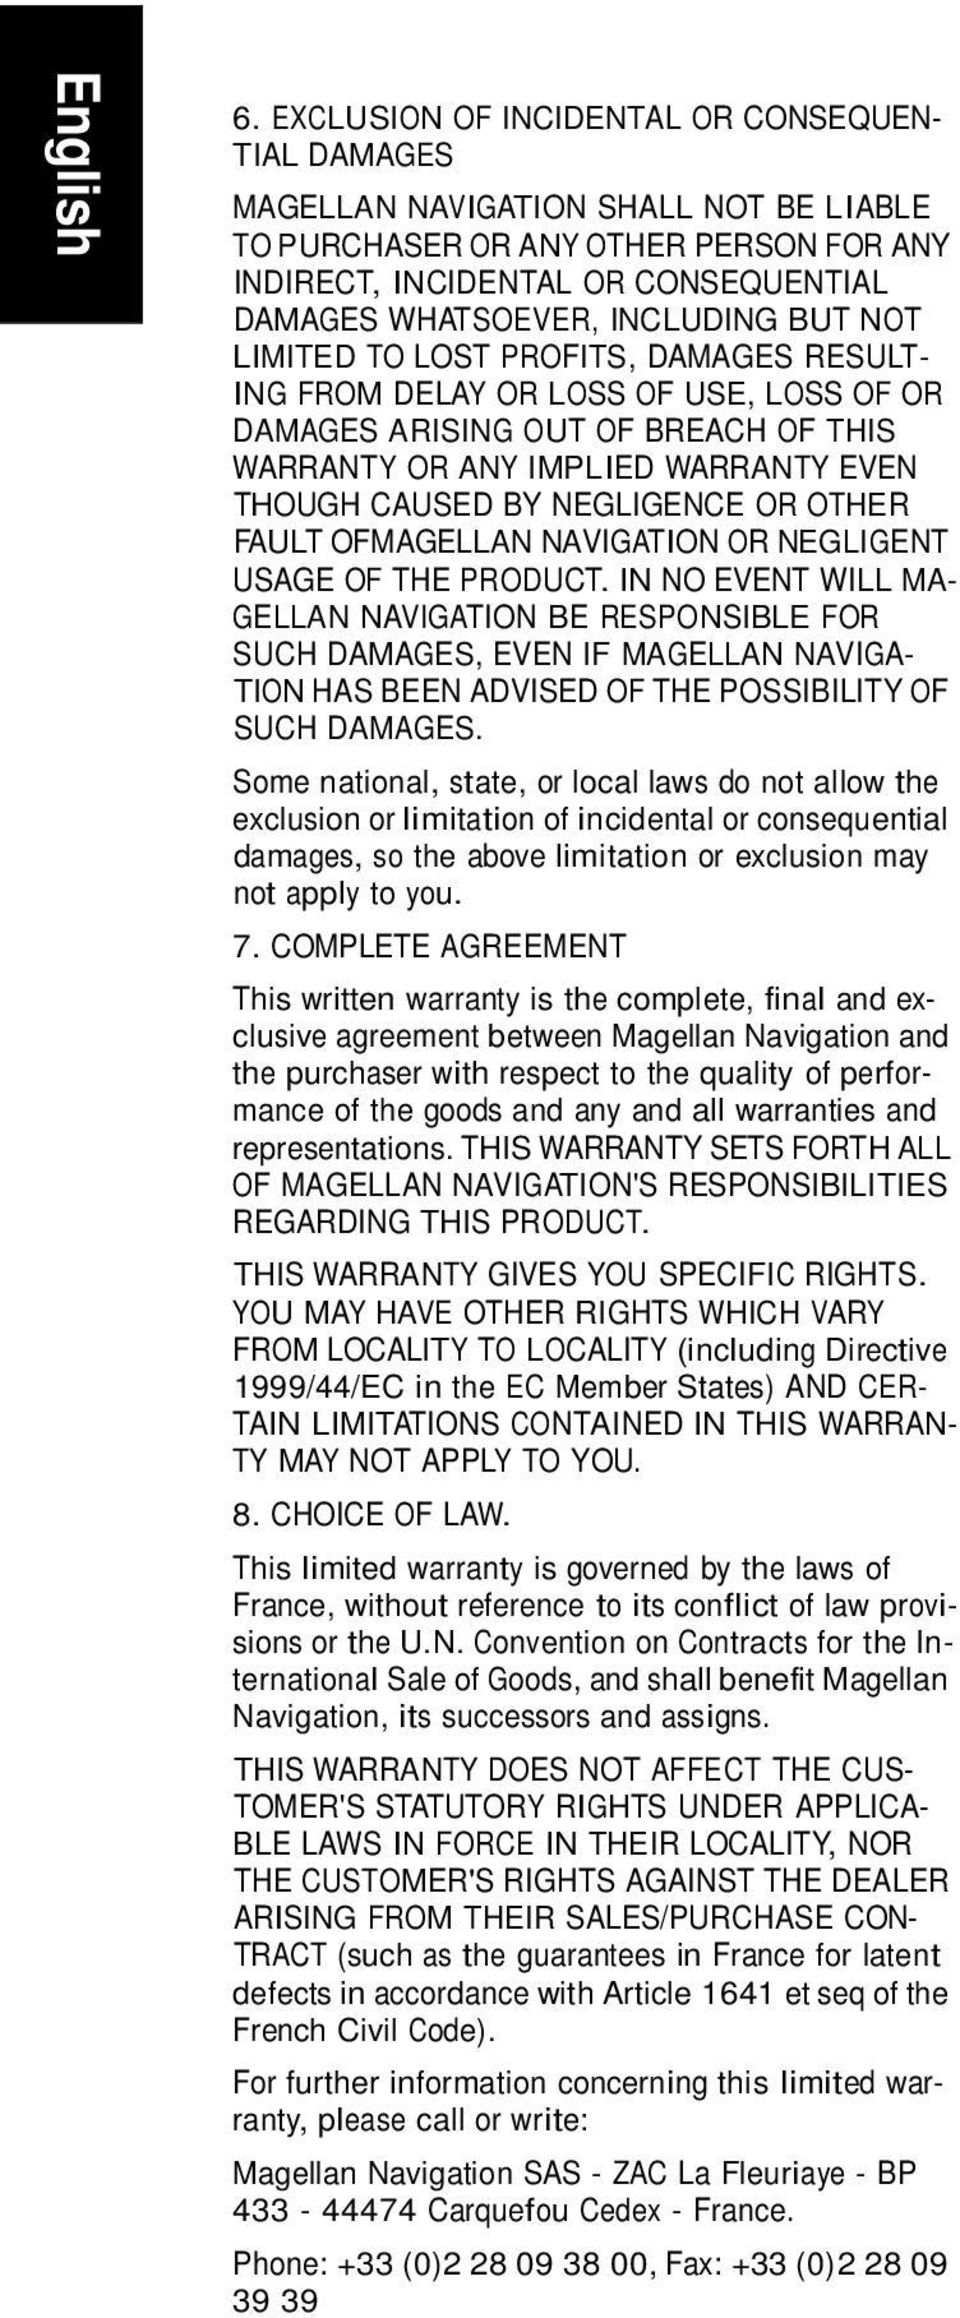 BUT NOT LIMITED TO LOST PROFITS, DAMAGES RESULT- ING FROM DELAY OR LOSS OF USE, LOSS OF OR DAMAGES ARISING OUT OF BREACH OF THIS WARRANTY OR ANY IMPLIED WARRANTY EVEN THOUGH CAUSED BY NEGLIGENCE OR